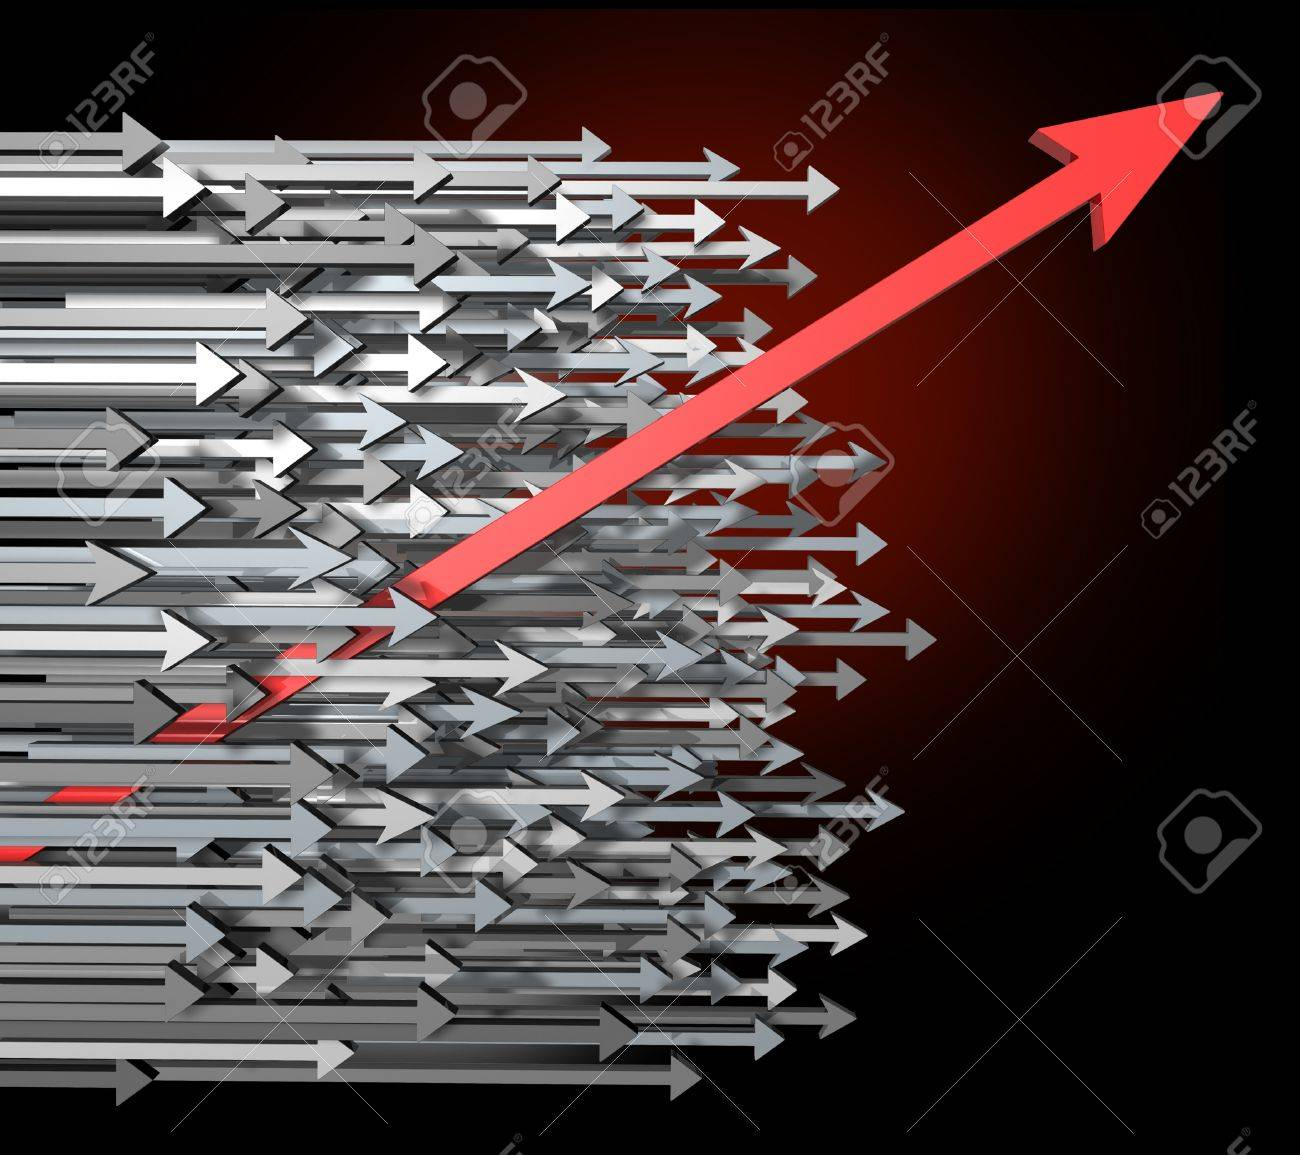 Against the current with innovation growth and Success breaking through moving up and standing out from the crowd  with clear focus of a goal as a new diagonal red arrow leading the race with old horizontal grey arrows for competition achievement. Stock Photo - 11840287